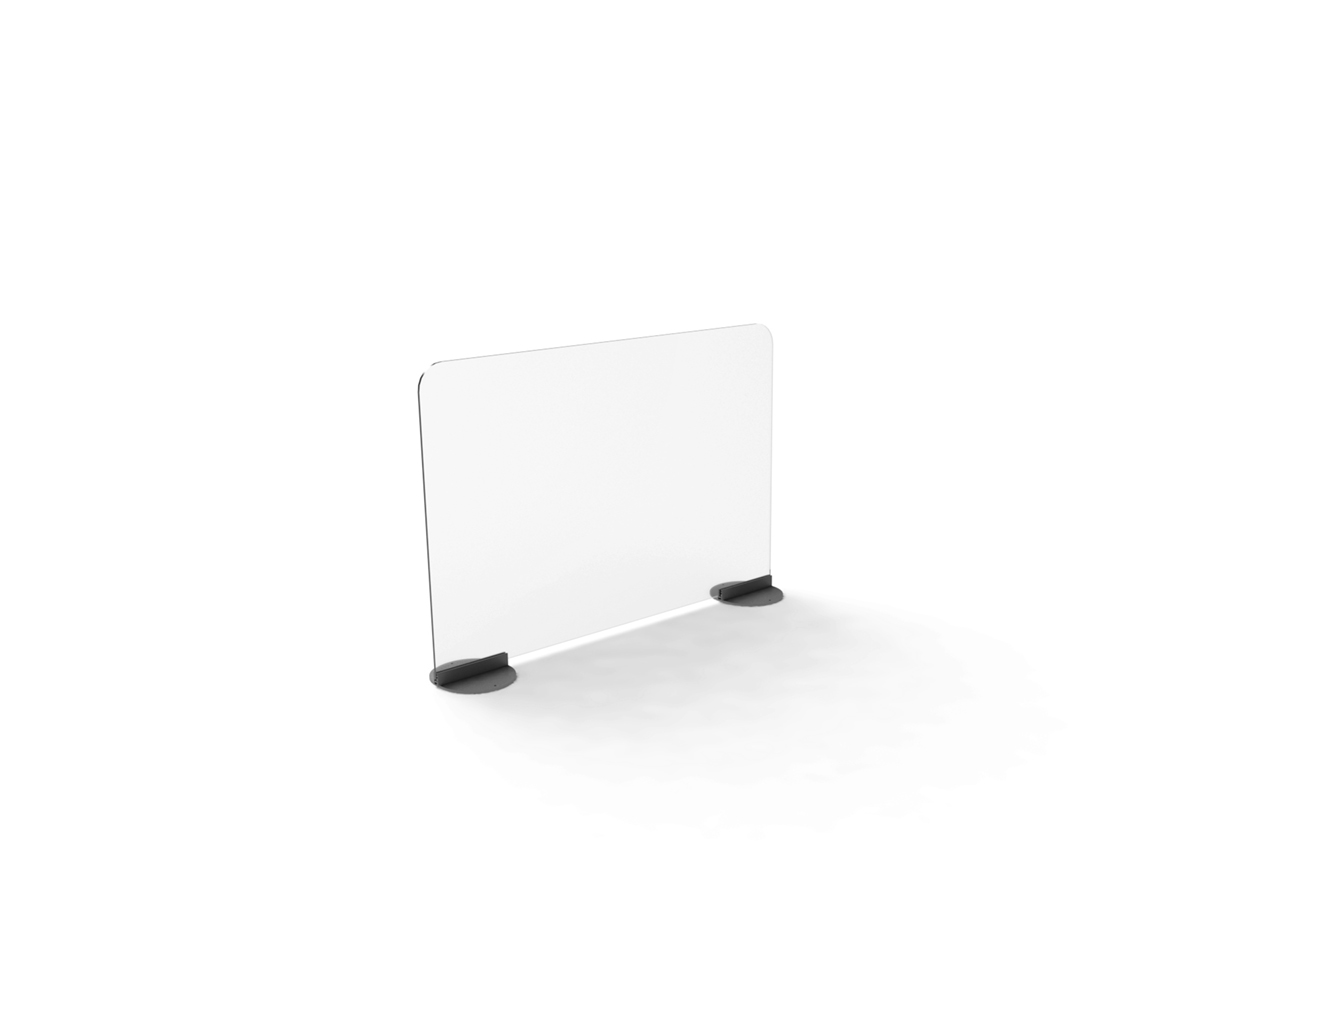 Clear Acrylic Desk Protective Screens